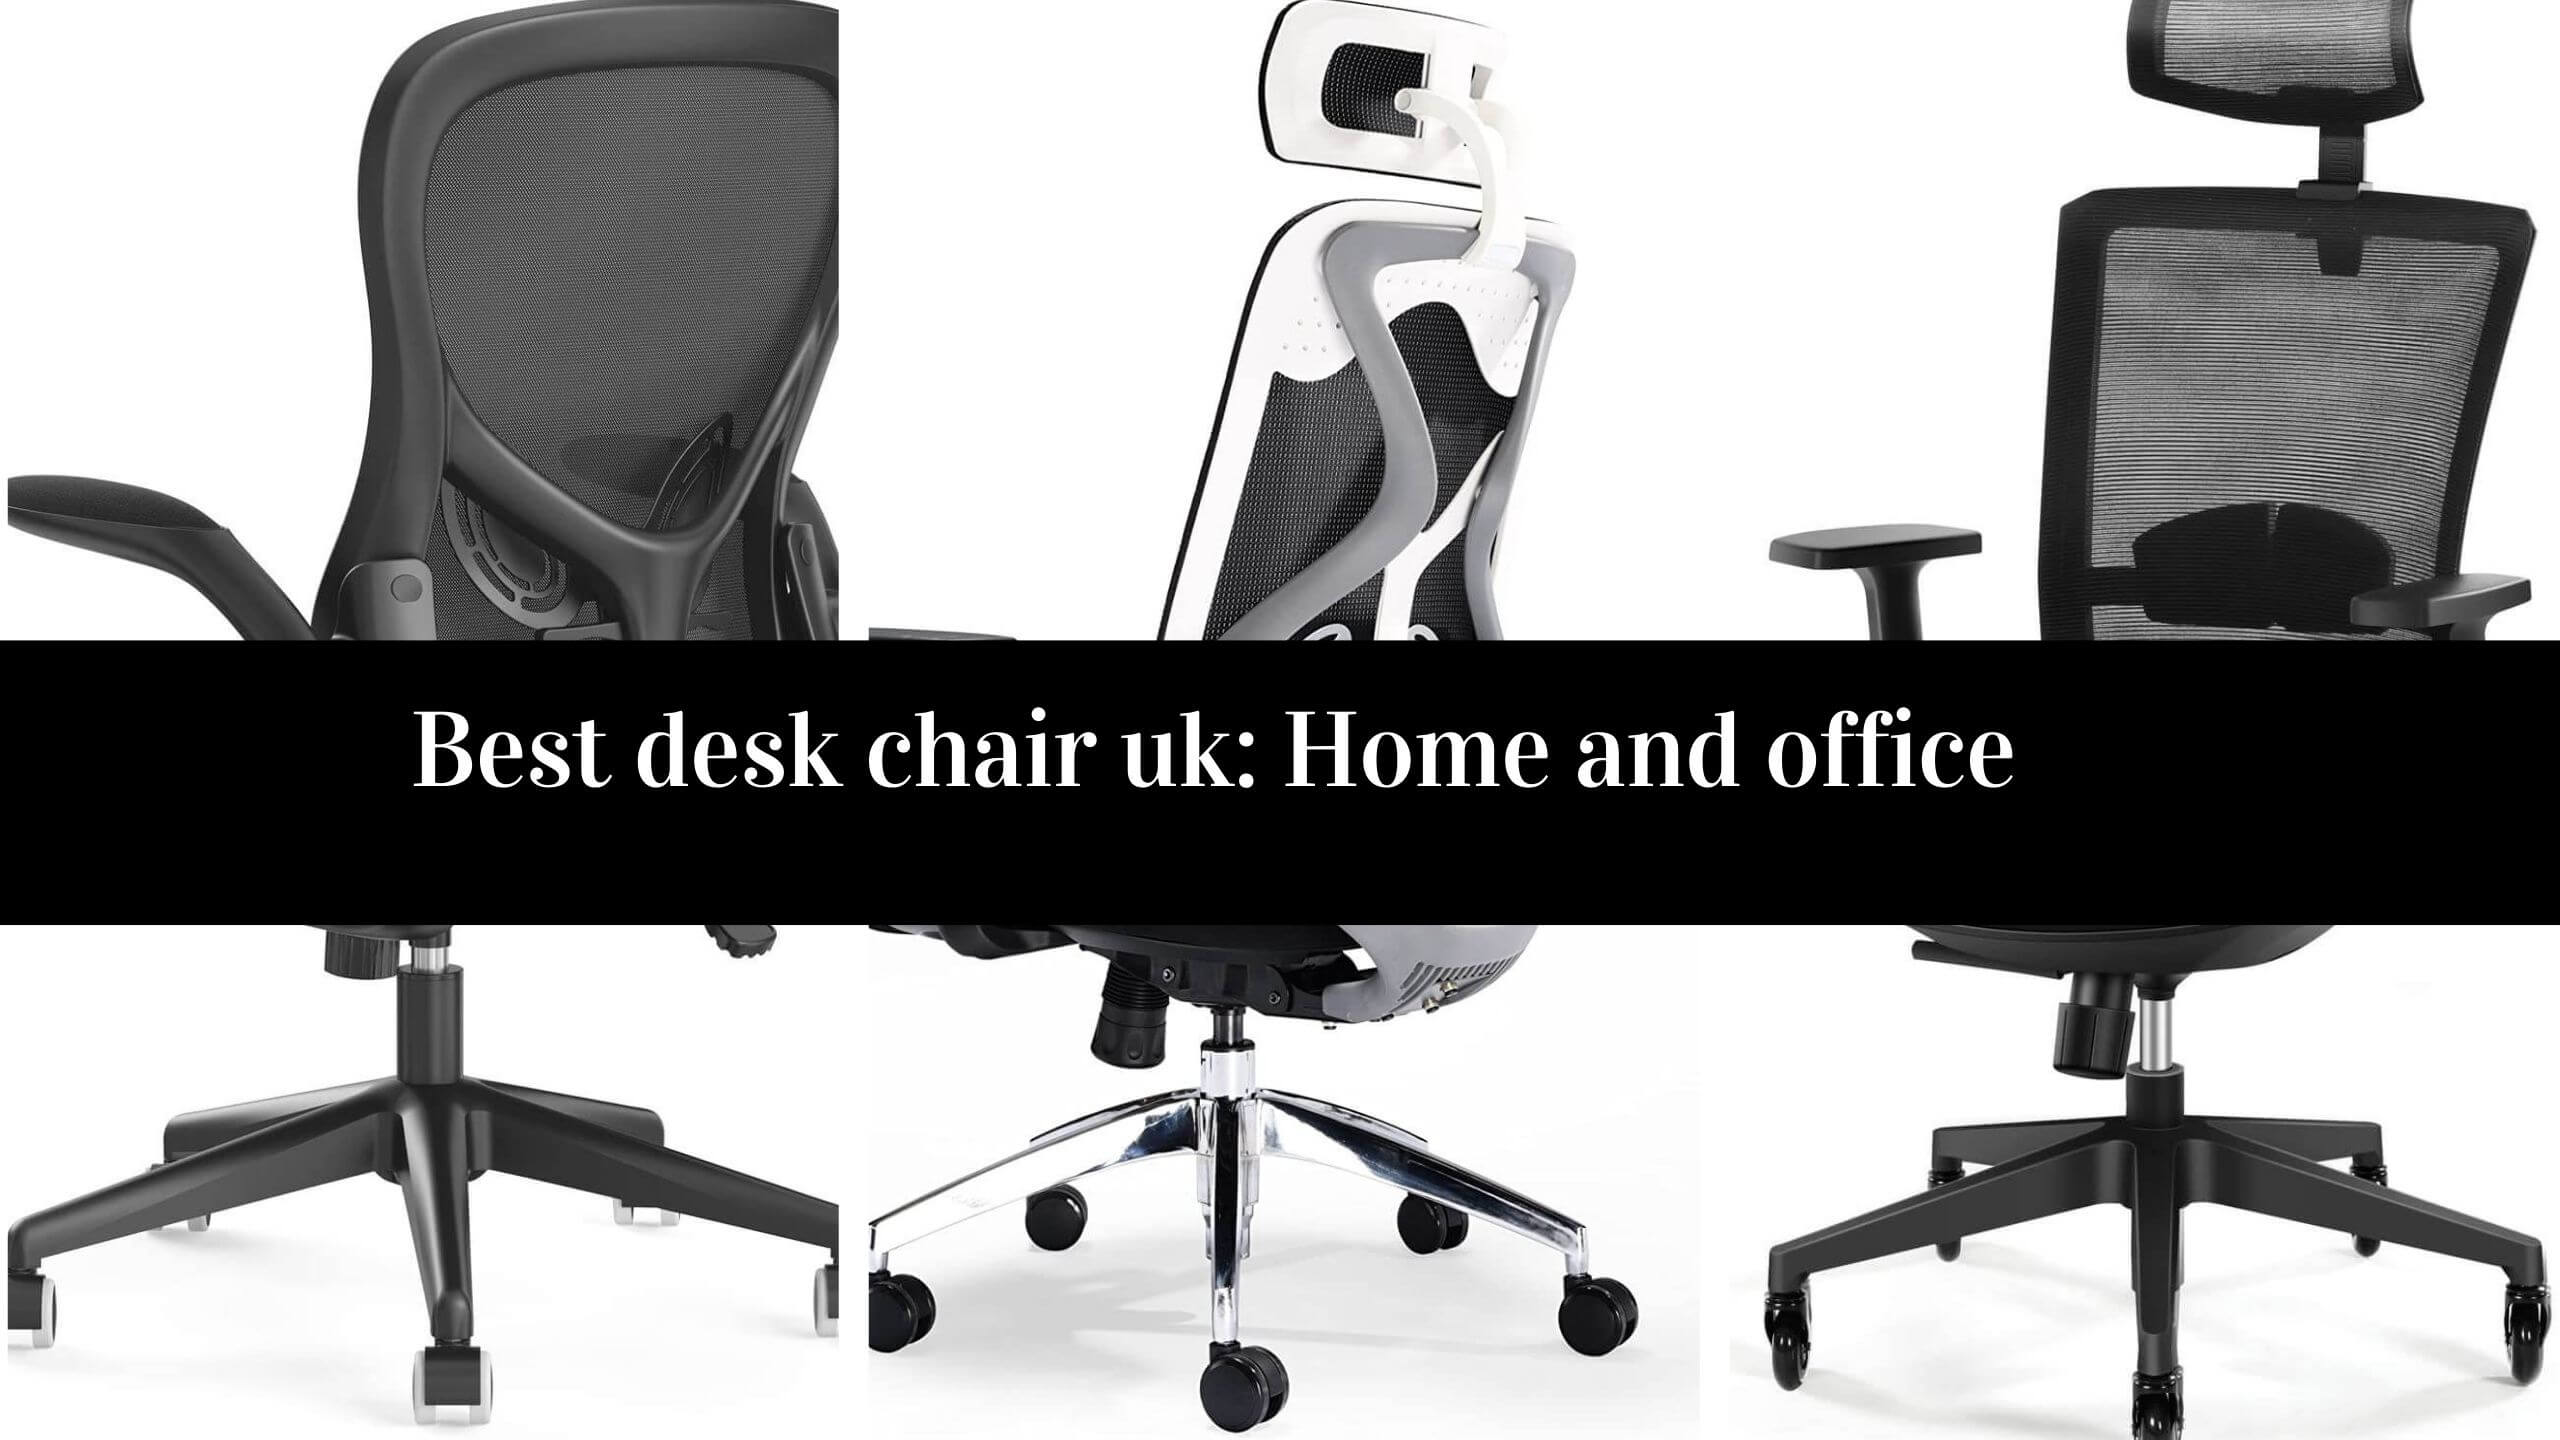 Best desk chair uk: Home and office